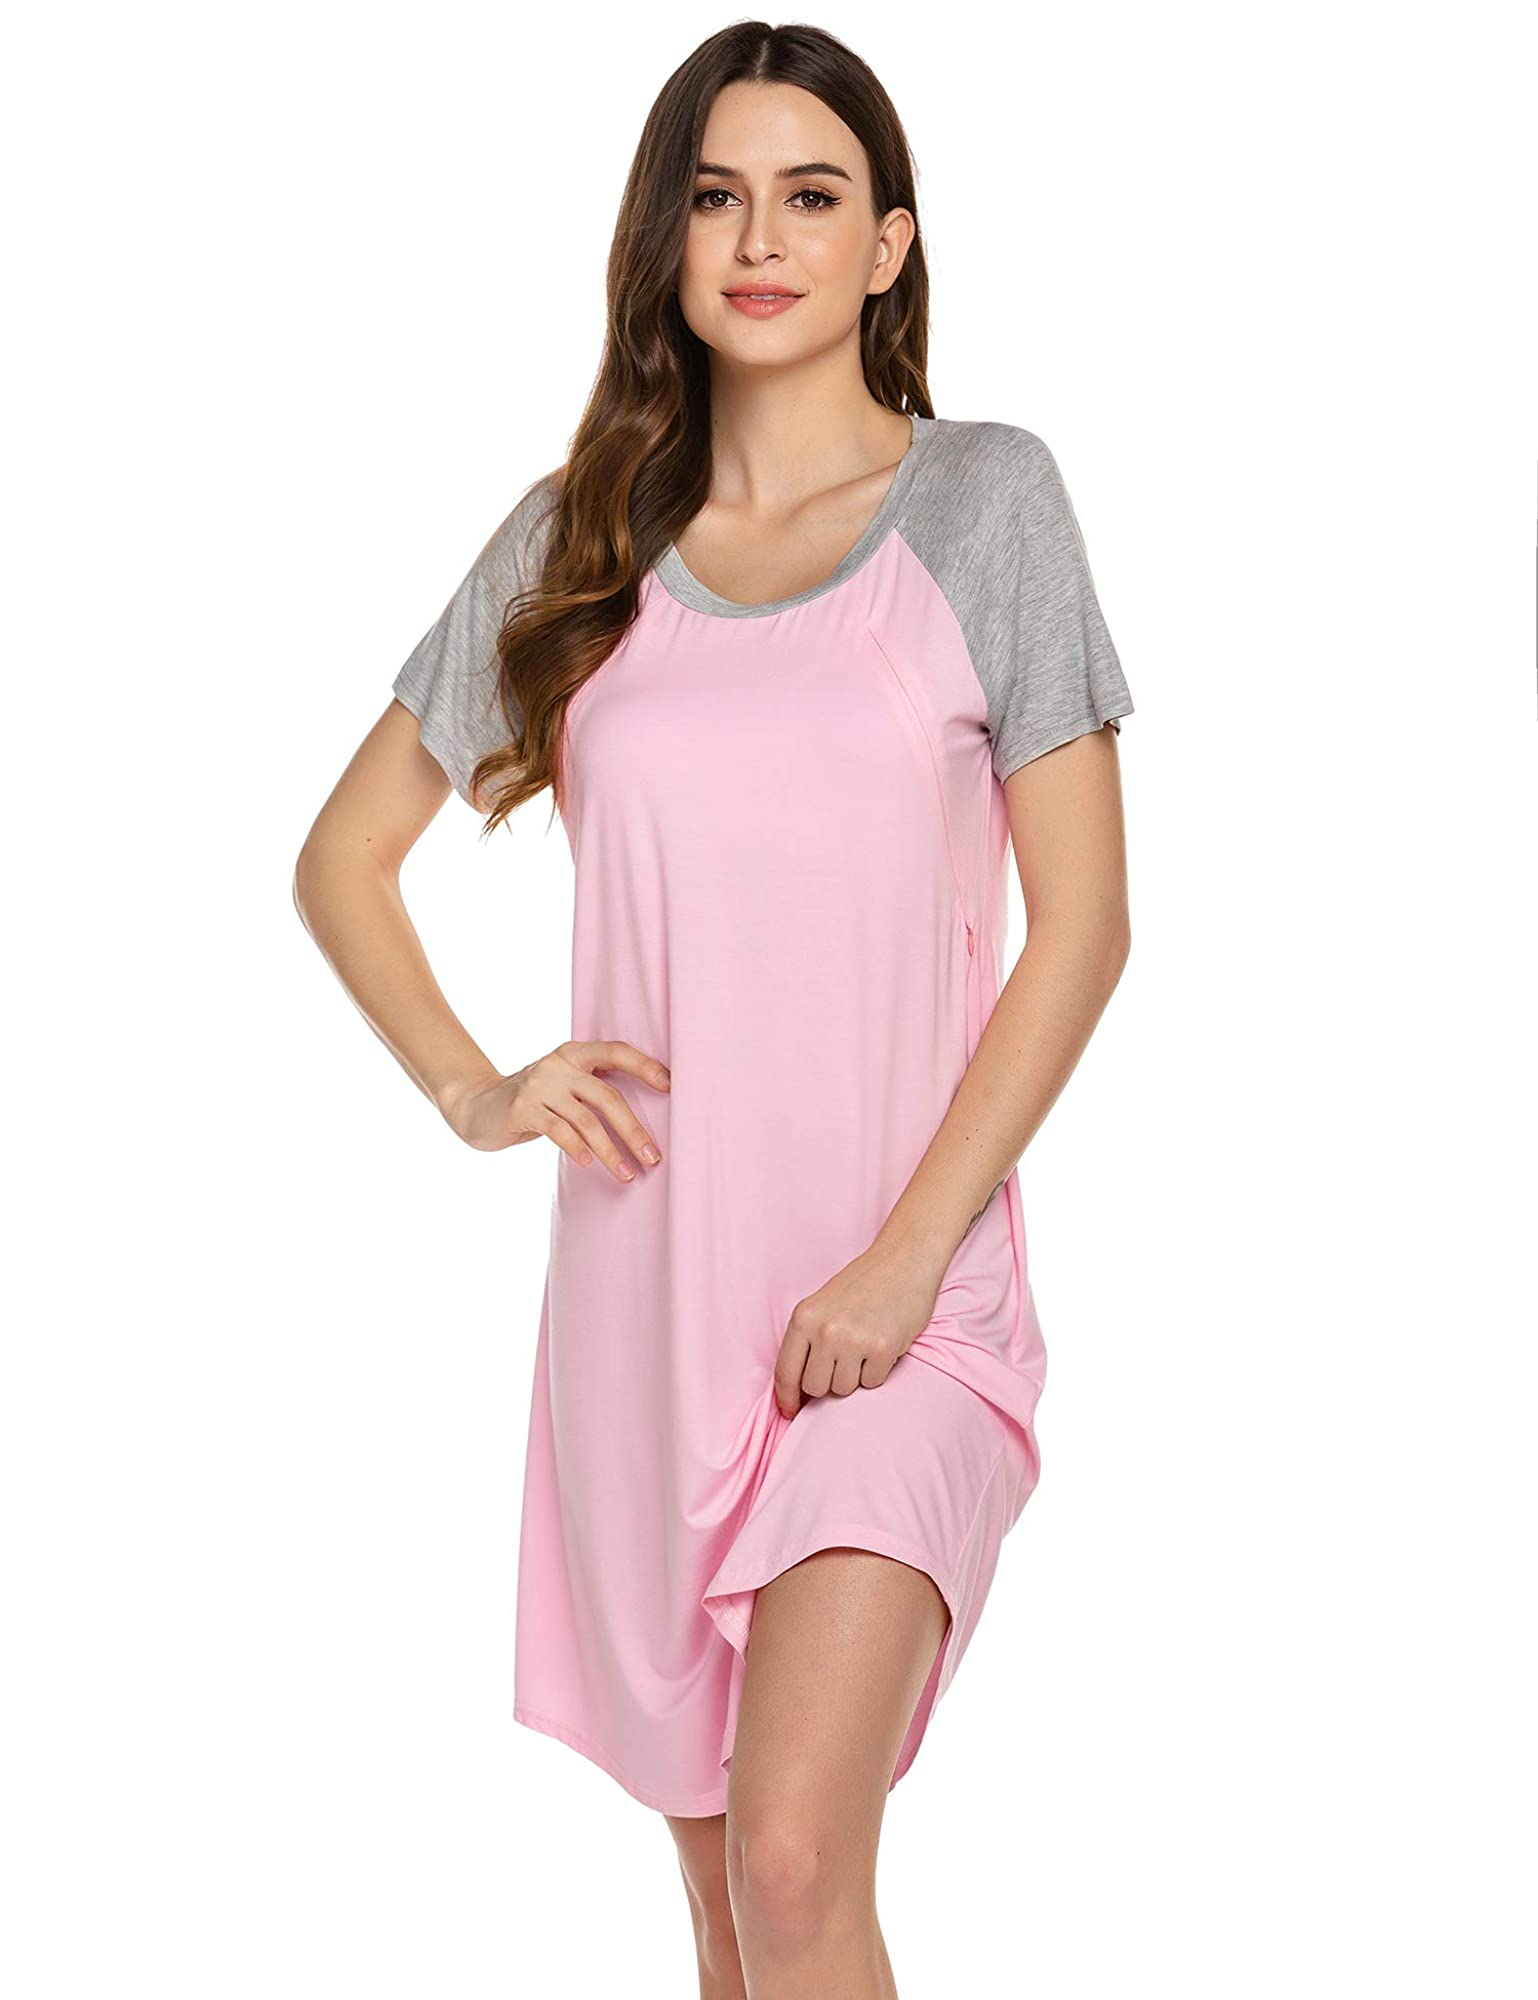 Easy Breast-Feeding Delivery/Labor/Nursing Gown For Women